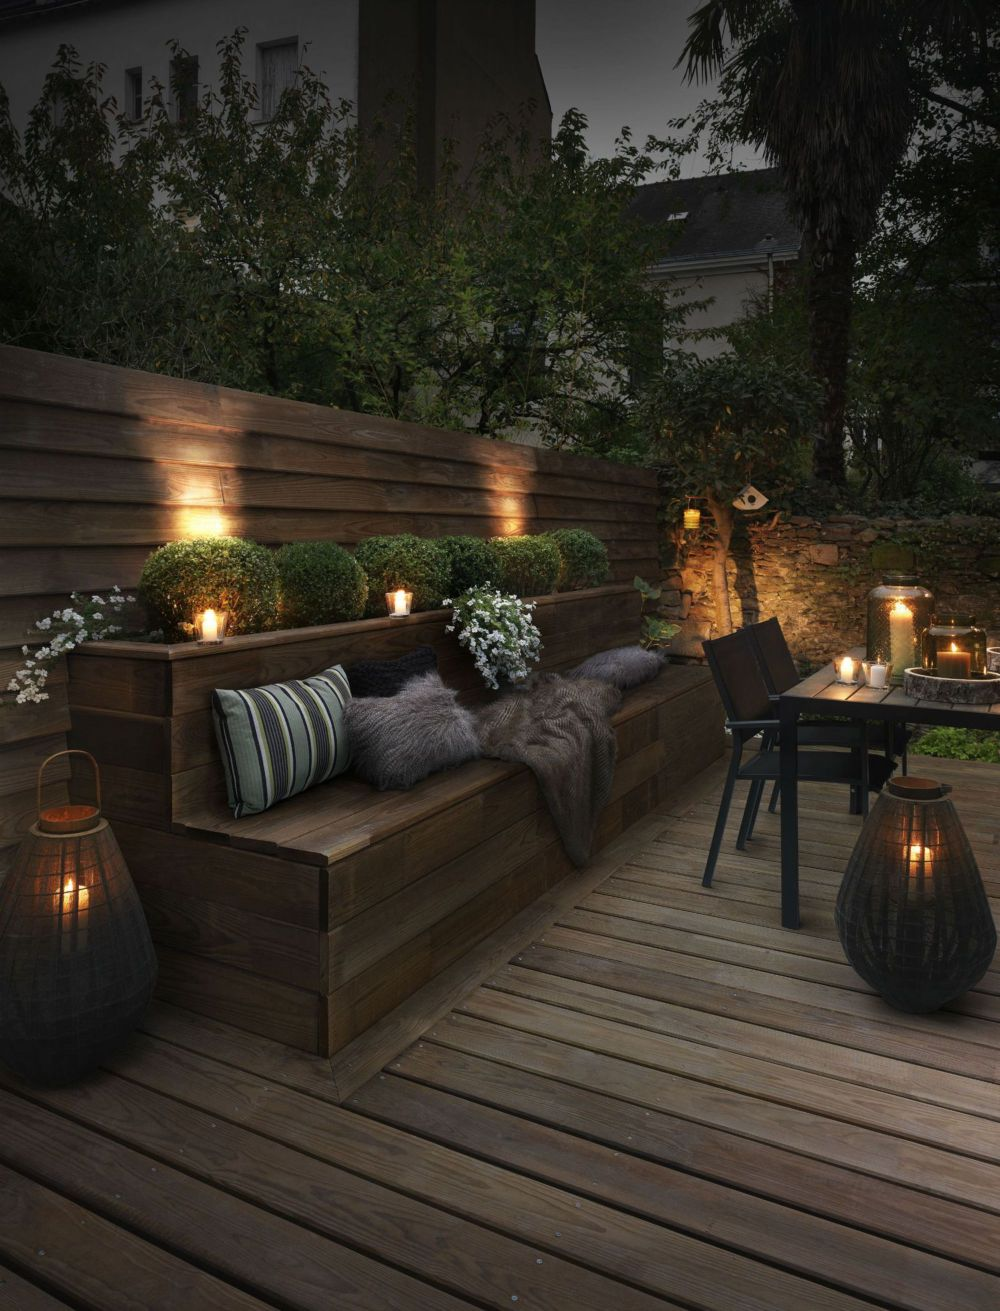 light up your outdoor space with style